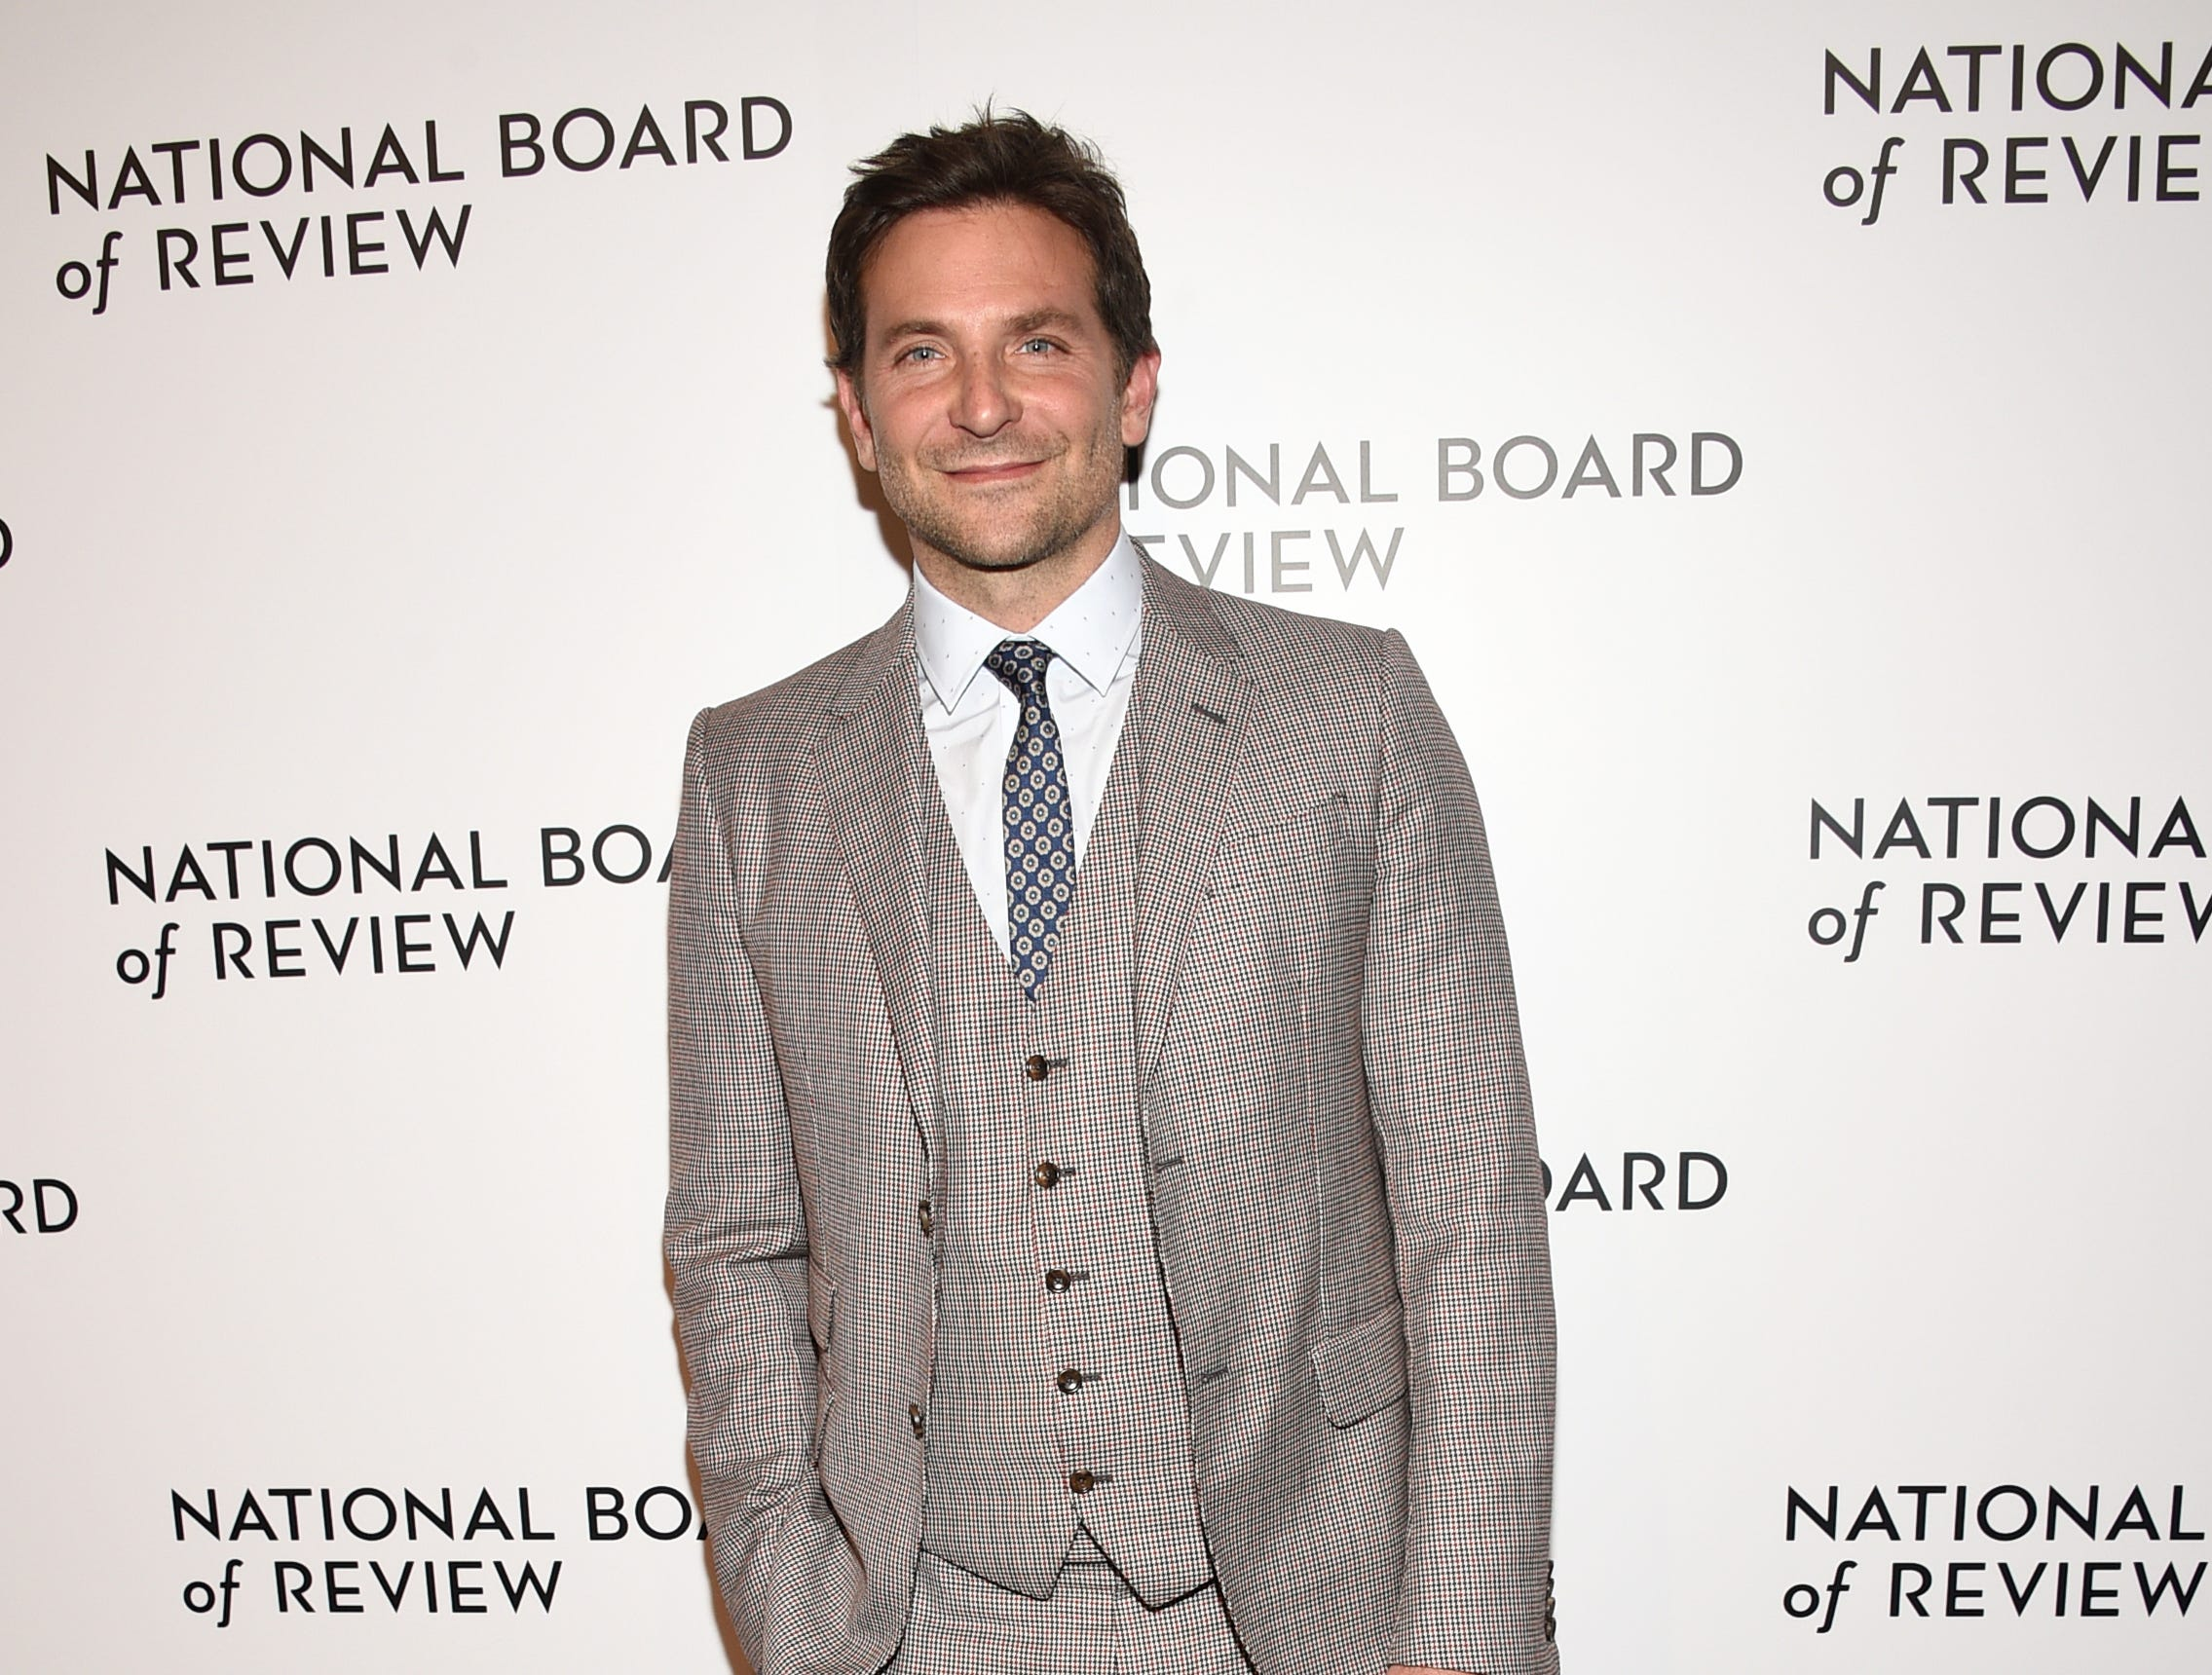 Bradley Cooper attends the National Board of Review Awards gala at Cipriani 42nd Street on Tuesday, Jan. 8, 2019, in New York. (Photo by Evan Agostini/Invision/AP) ORG XMIT: NYBR102